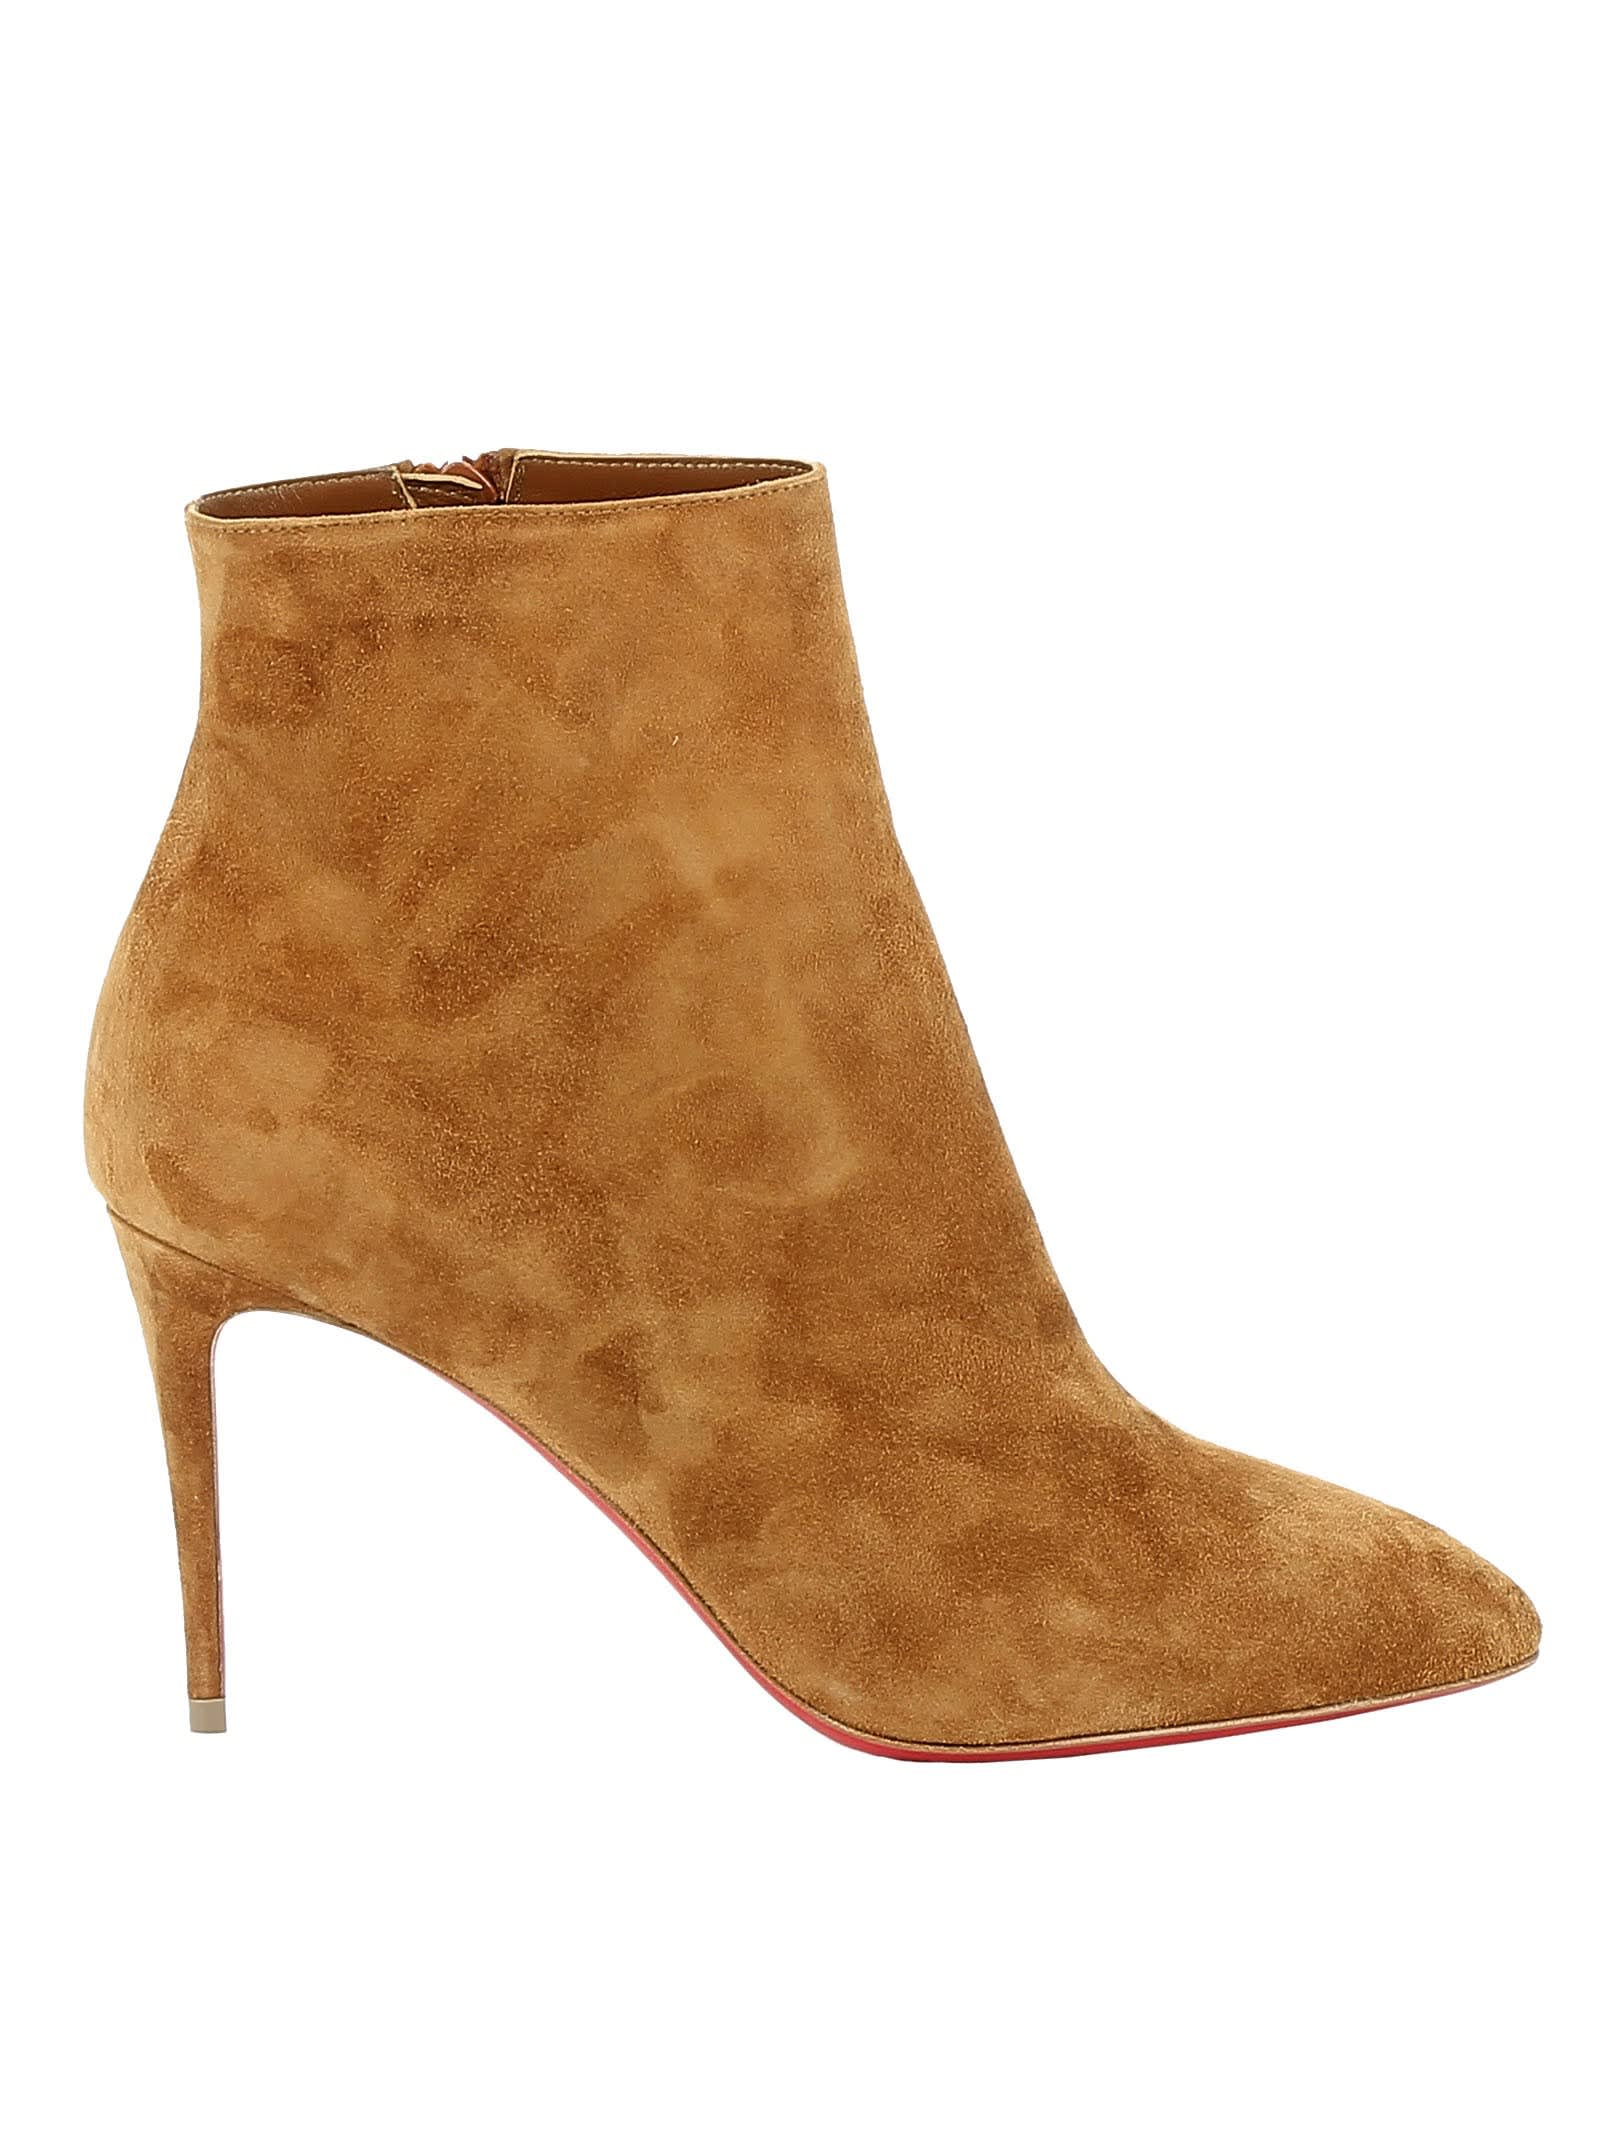 innovative design d8b9f f7662 Best price on the market at italist | Christian Louboutin Christian  Louboutin Cuoio Suede Ankle Boots